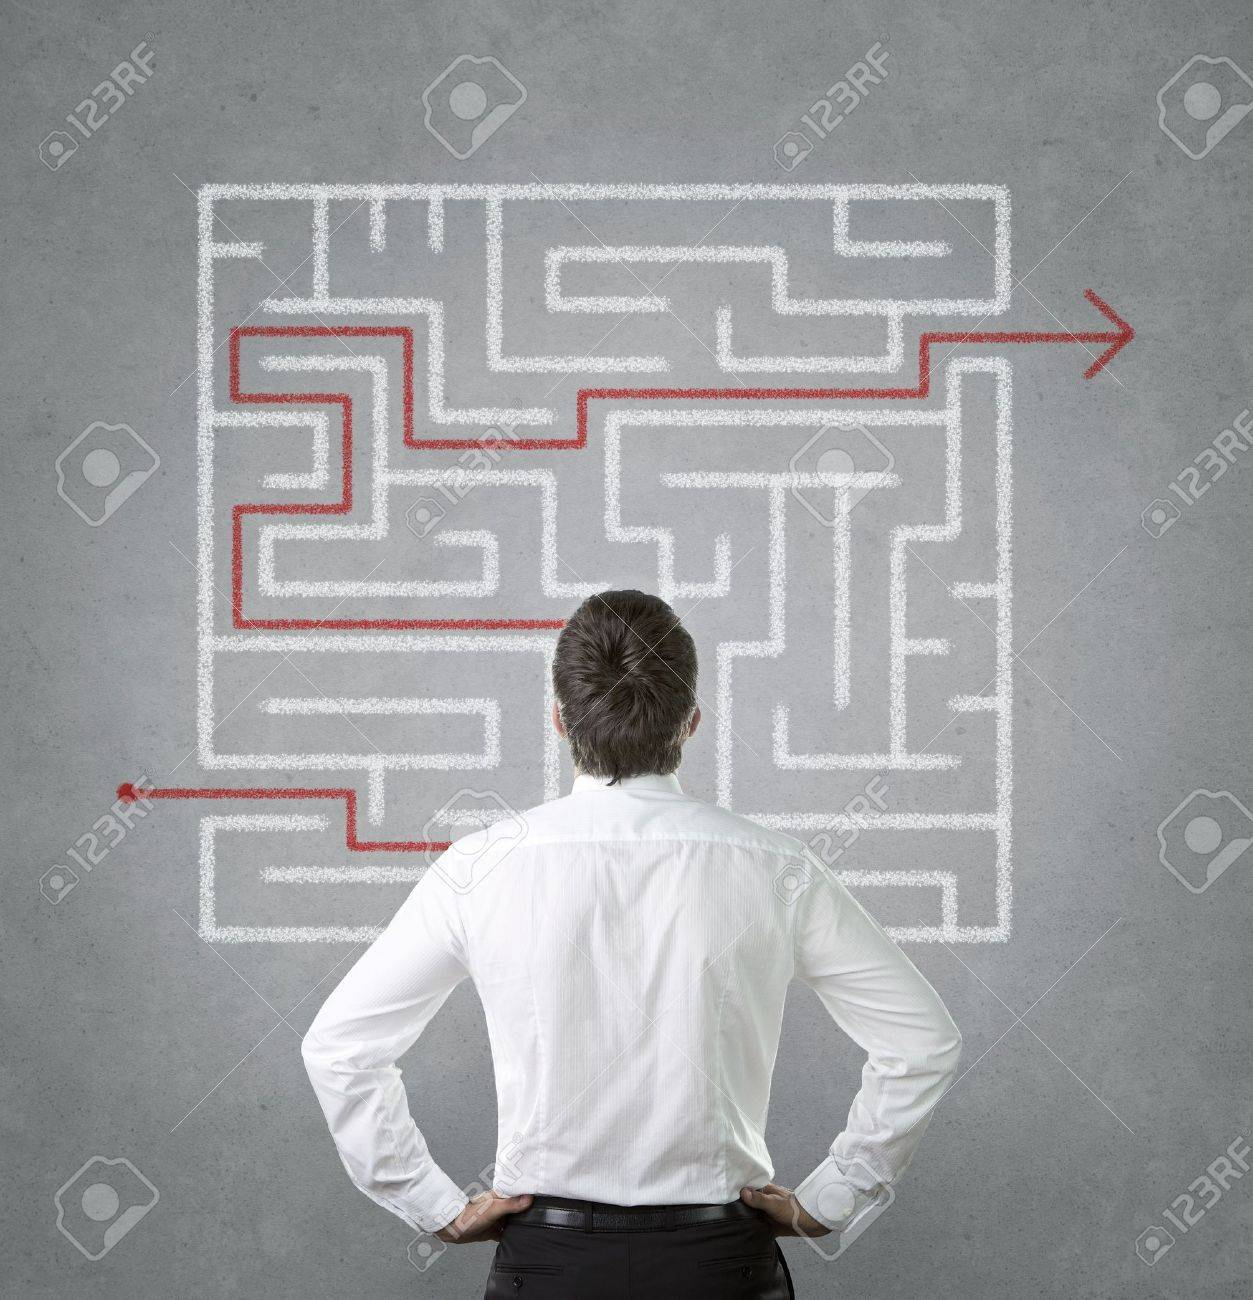 Confused young businessman looking at the labyrinth on the wall - 17662579